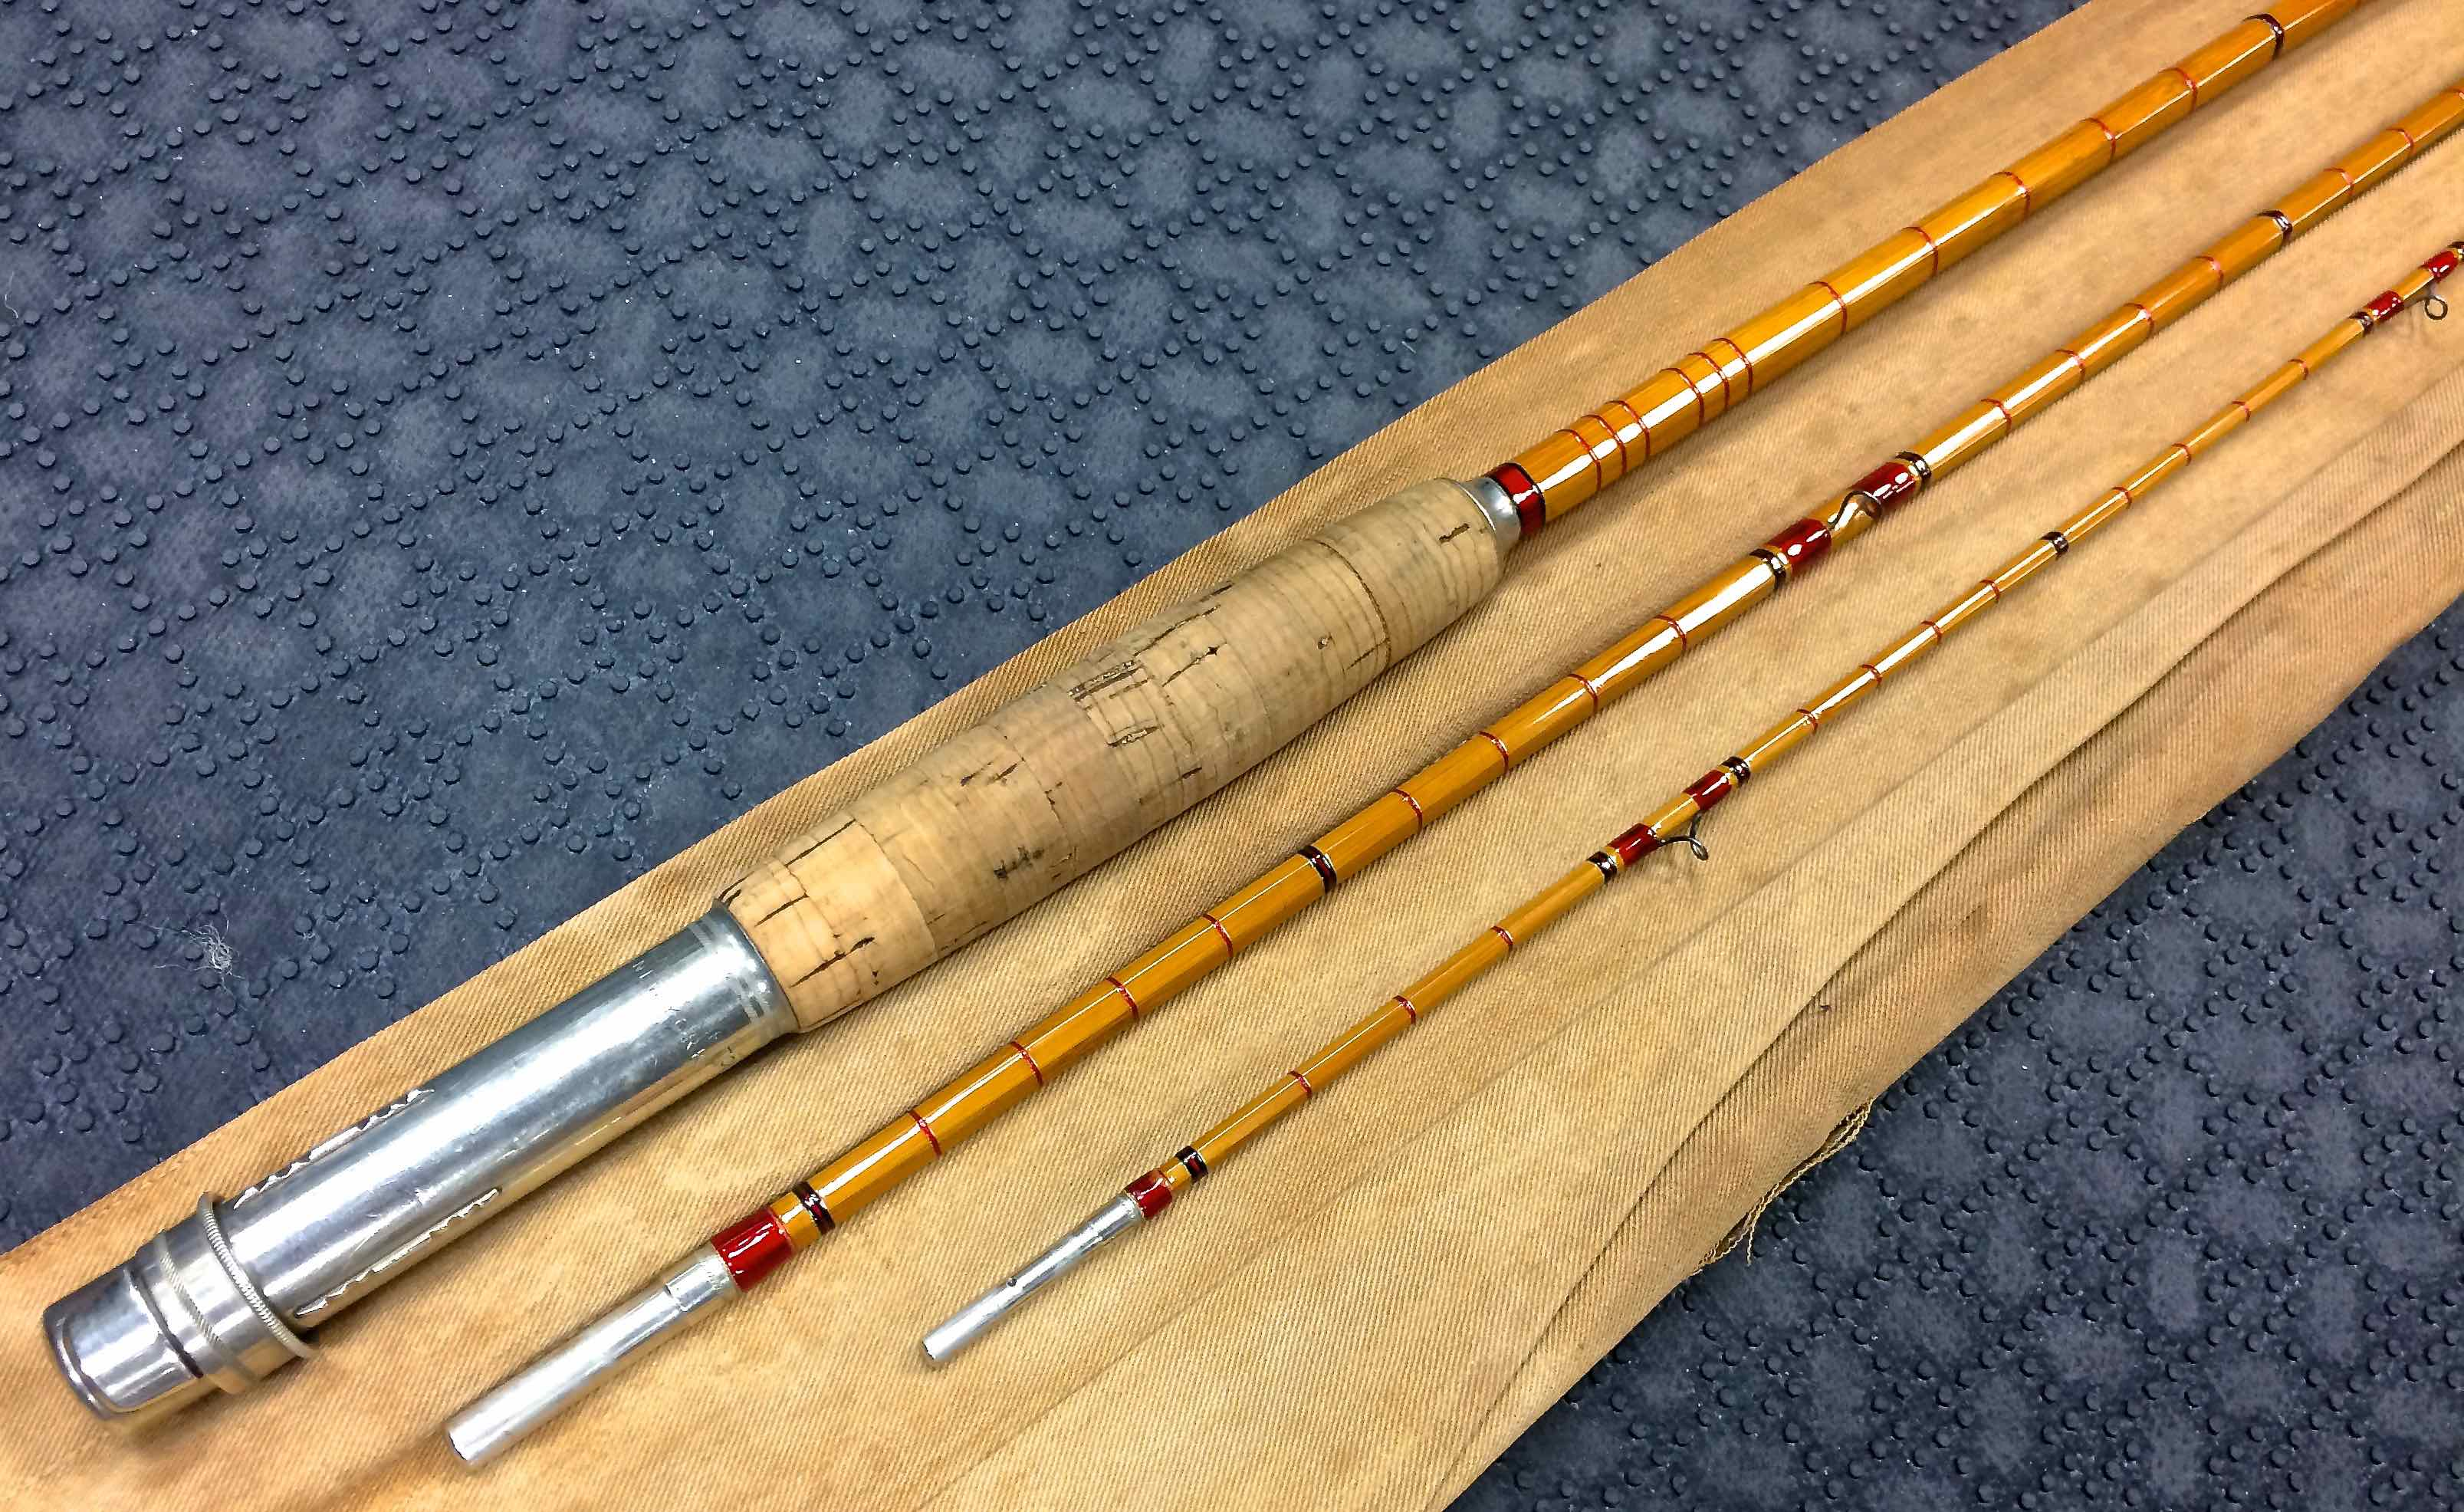 abercrombie fitch 9 67wt 3 piece bamboo fly rod great condition